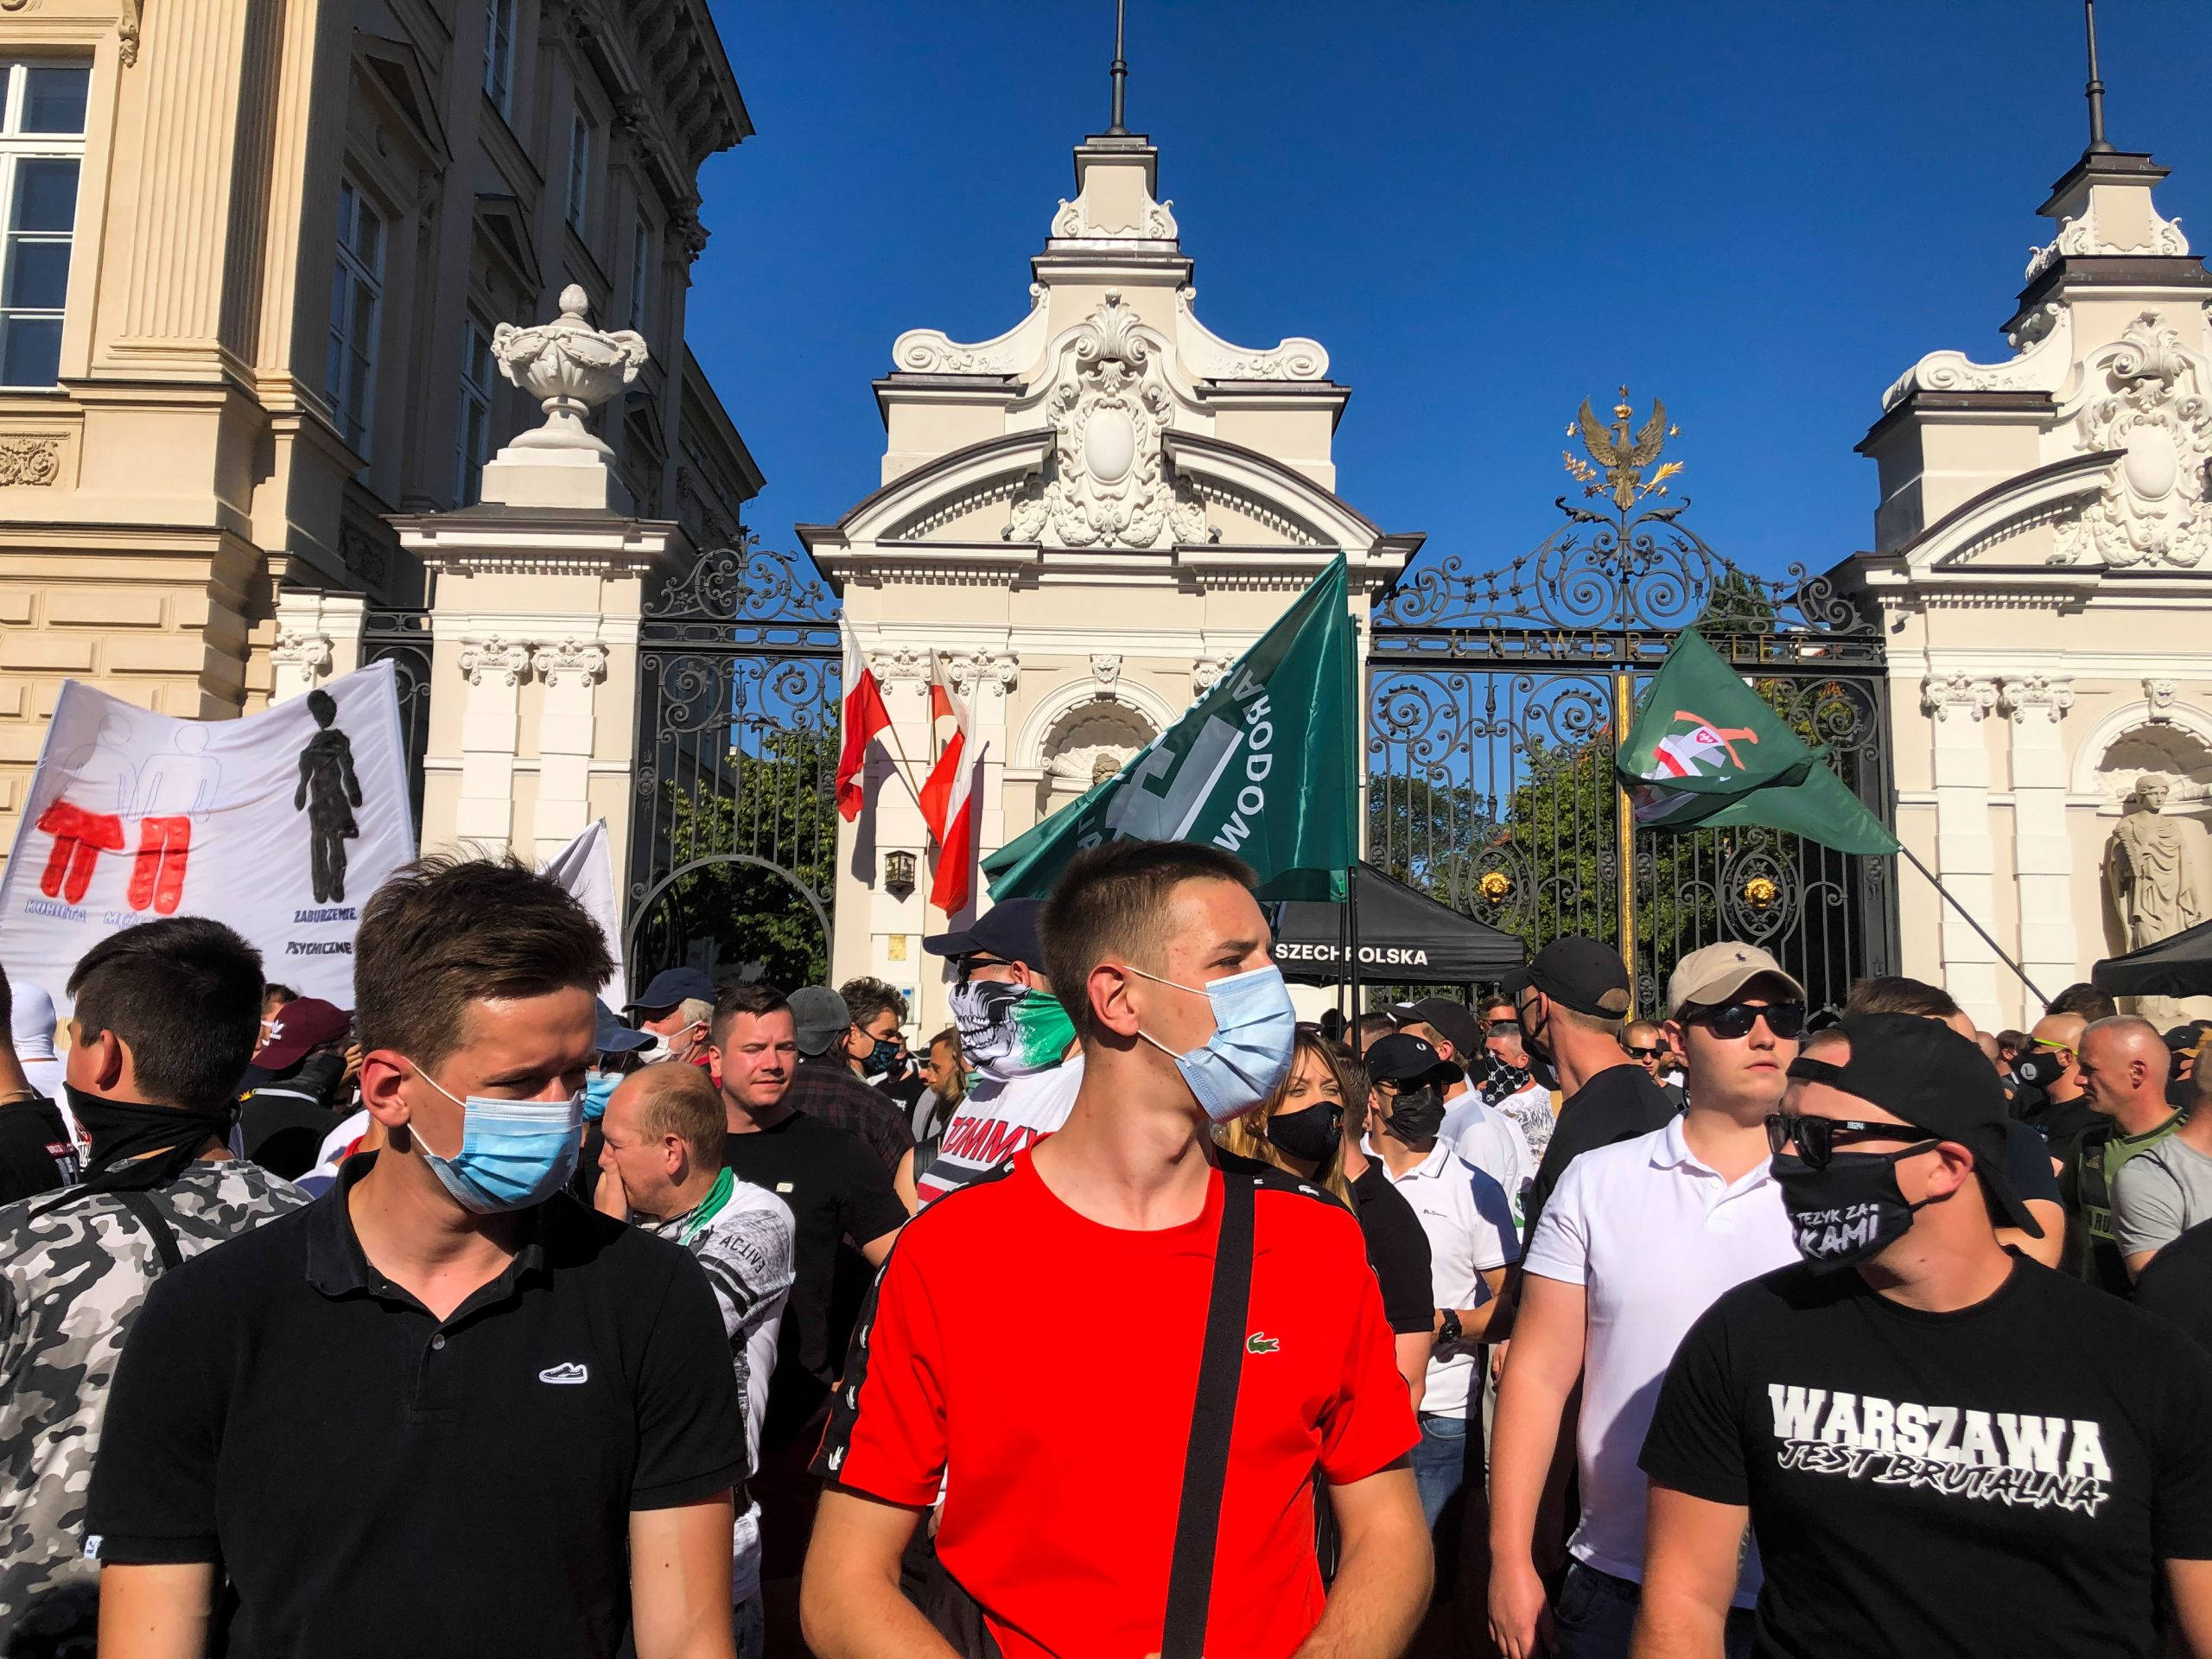 """Supporters of a far-right party staged a protest using the slogan """"Stop the LGBT aggression"""" outside Warsaw University, chanting slogans and burning a rainbow flag."""